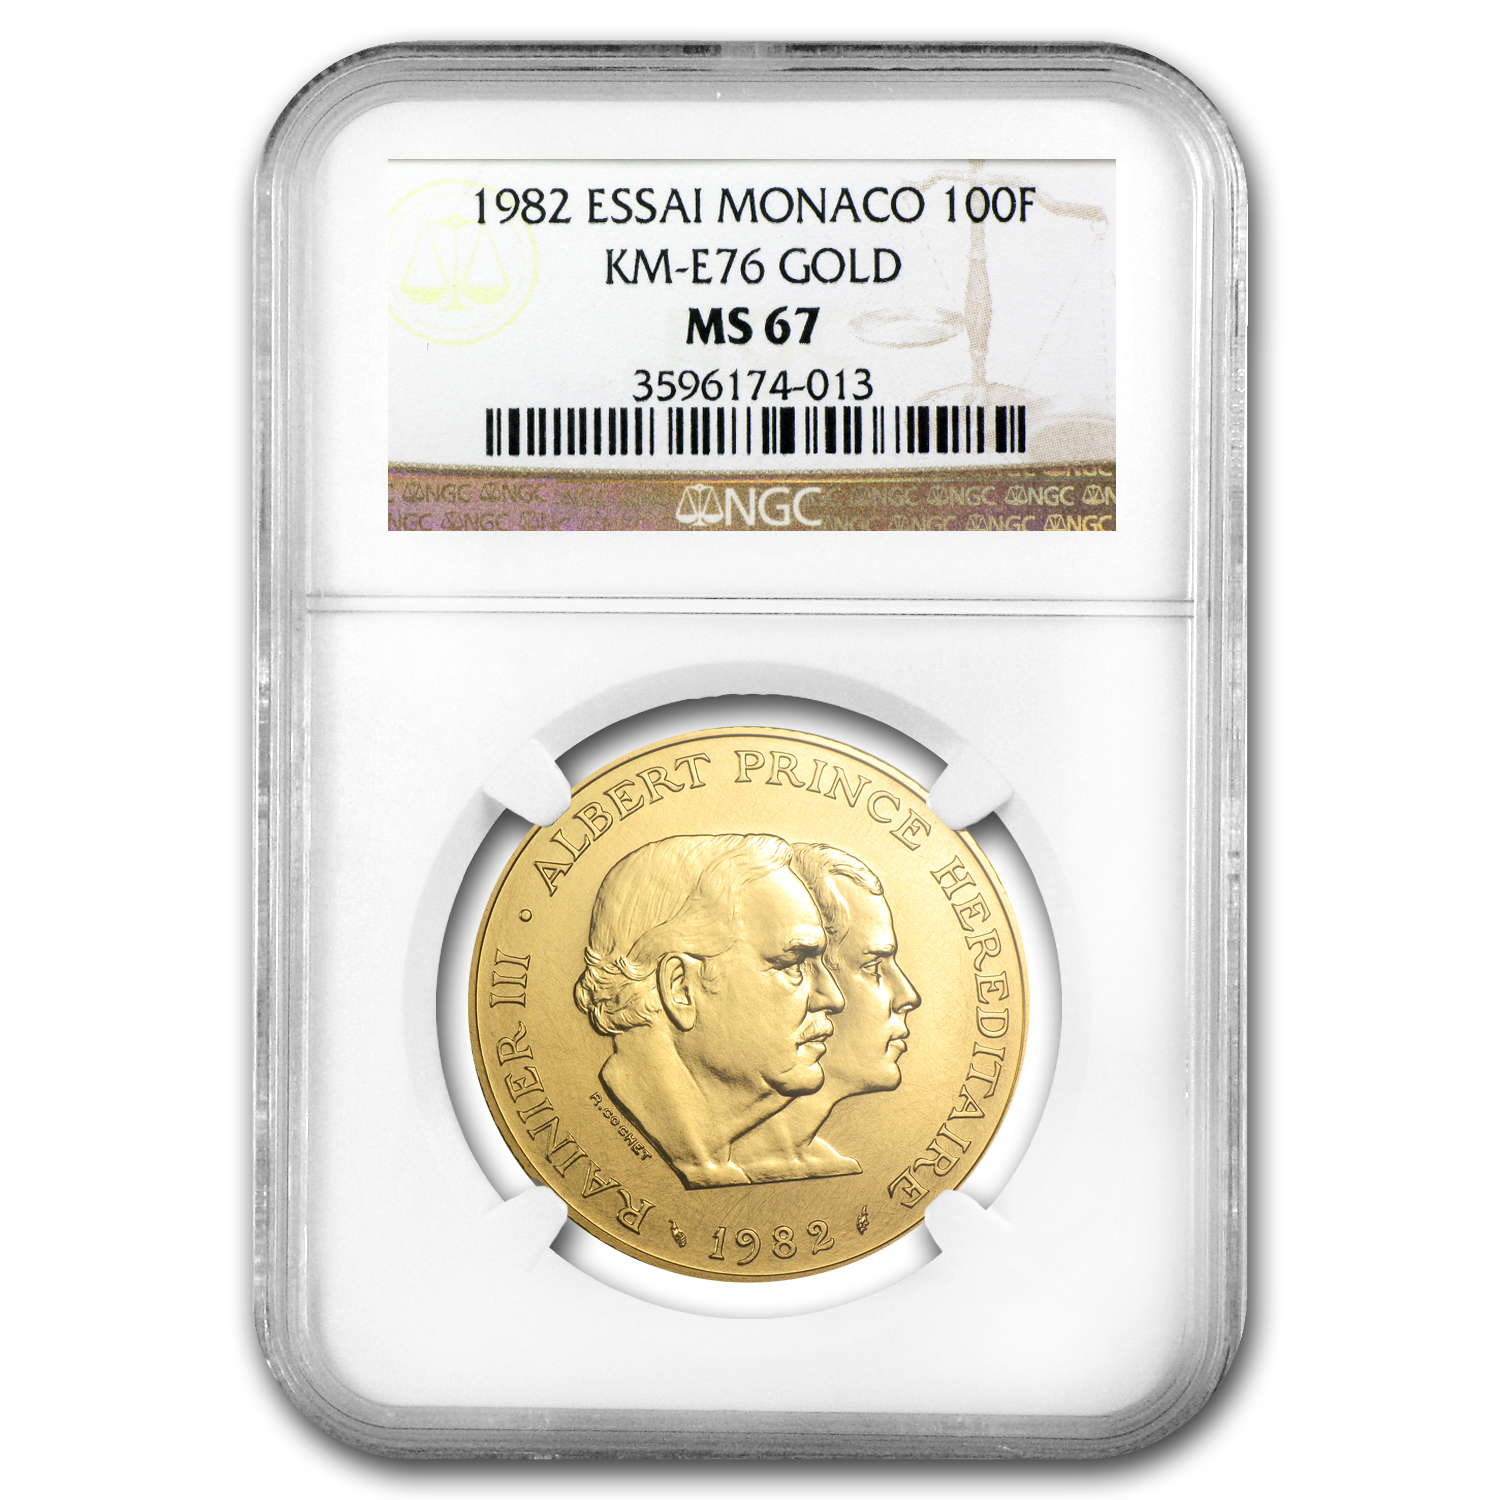 1982 Monaco Gold 100 Francs Princes MS-67 NGC